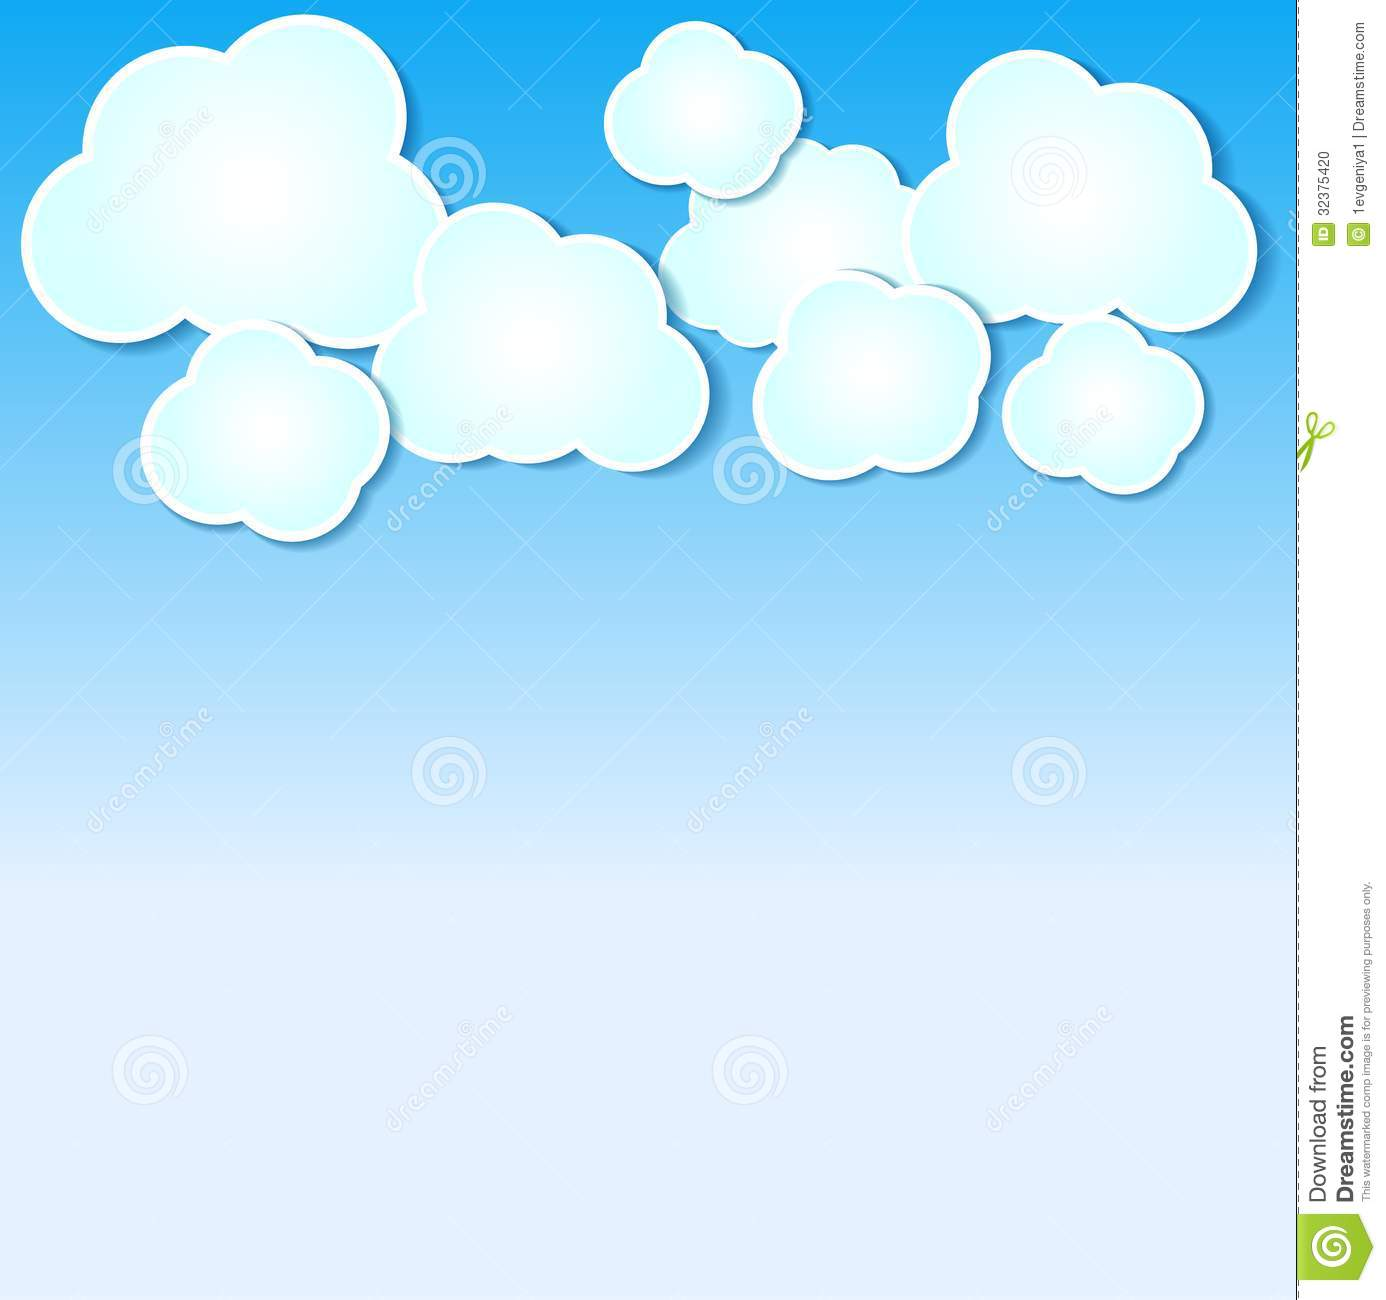 Clouds clipart light blue Clouds Paper illustrated Panda Clipart